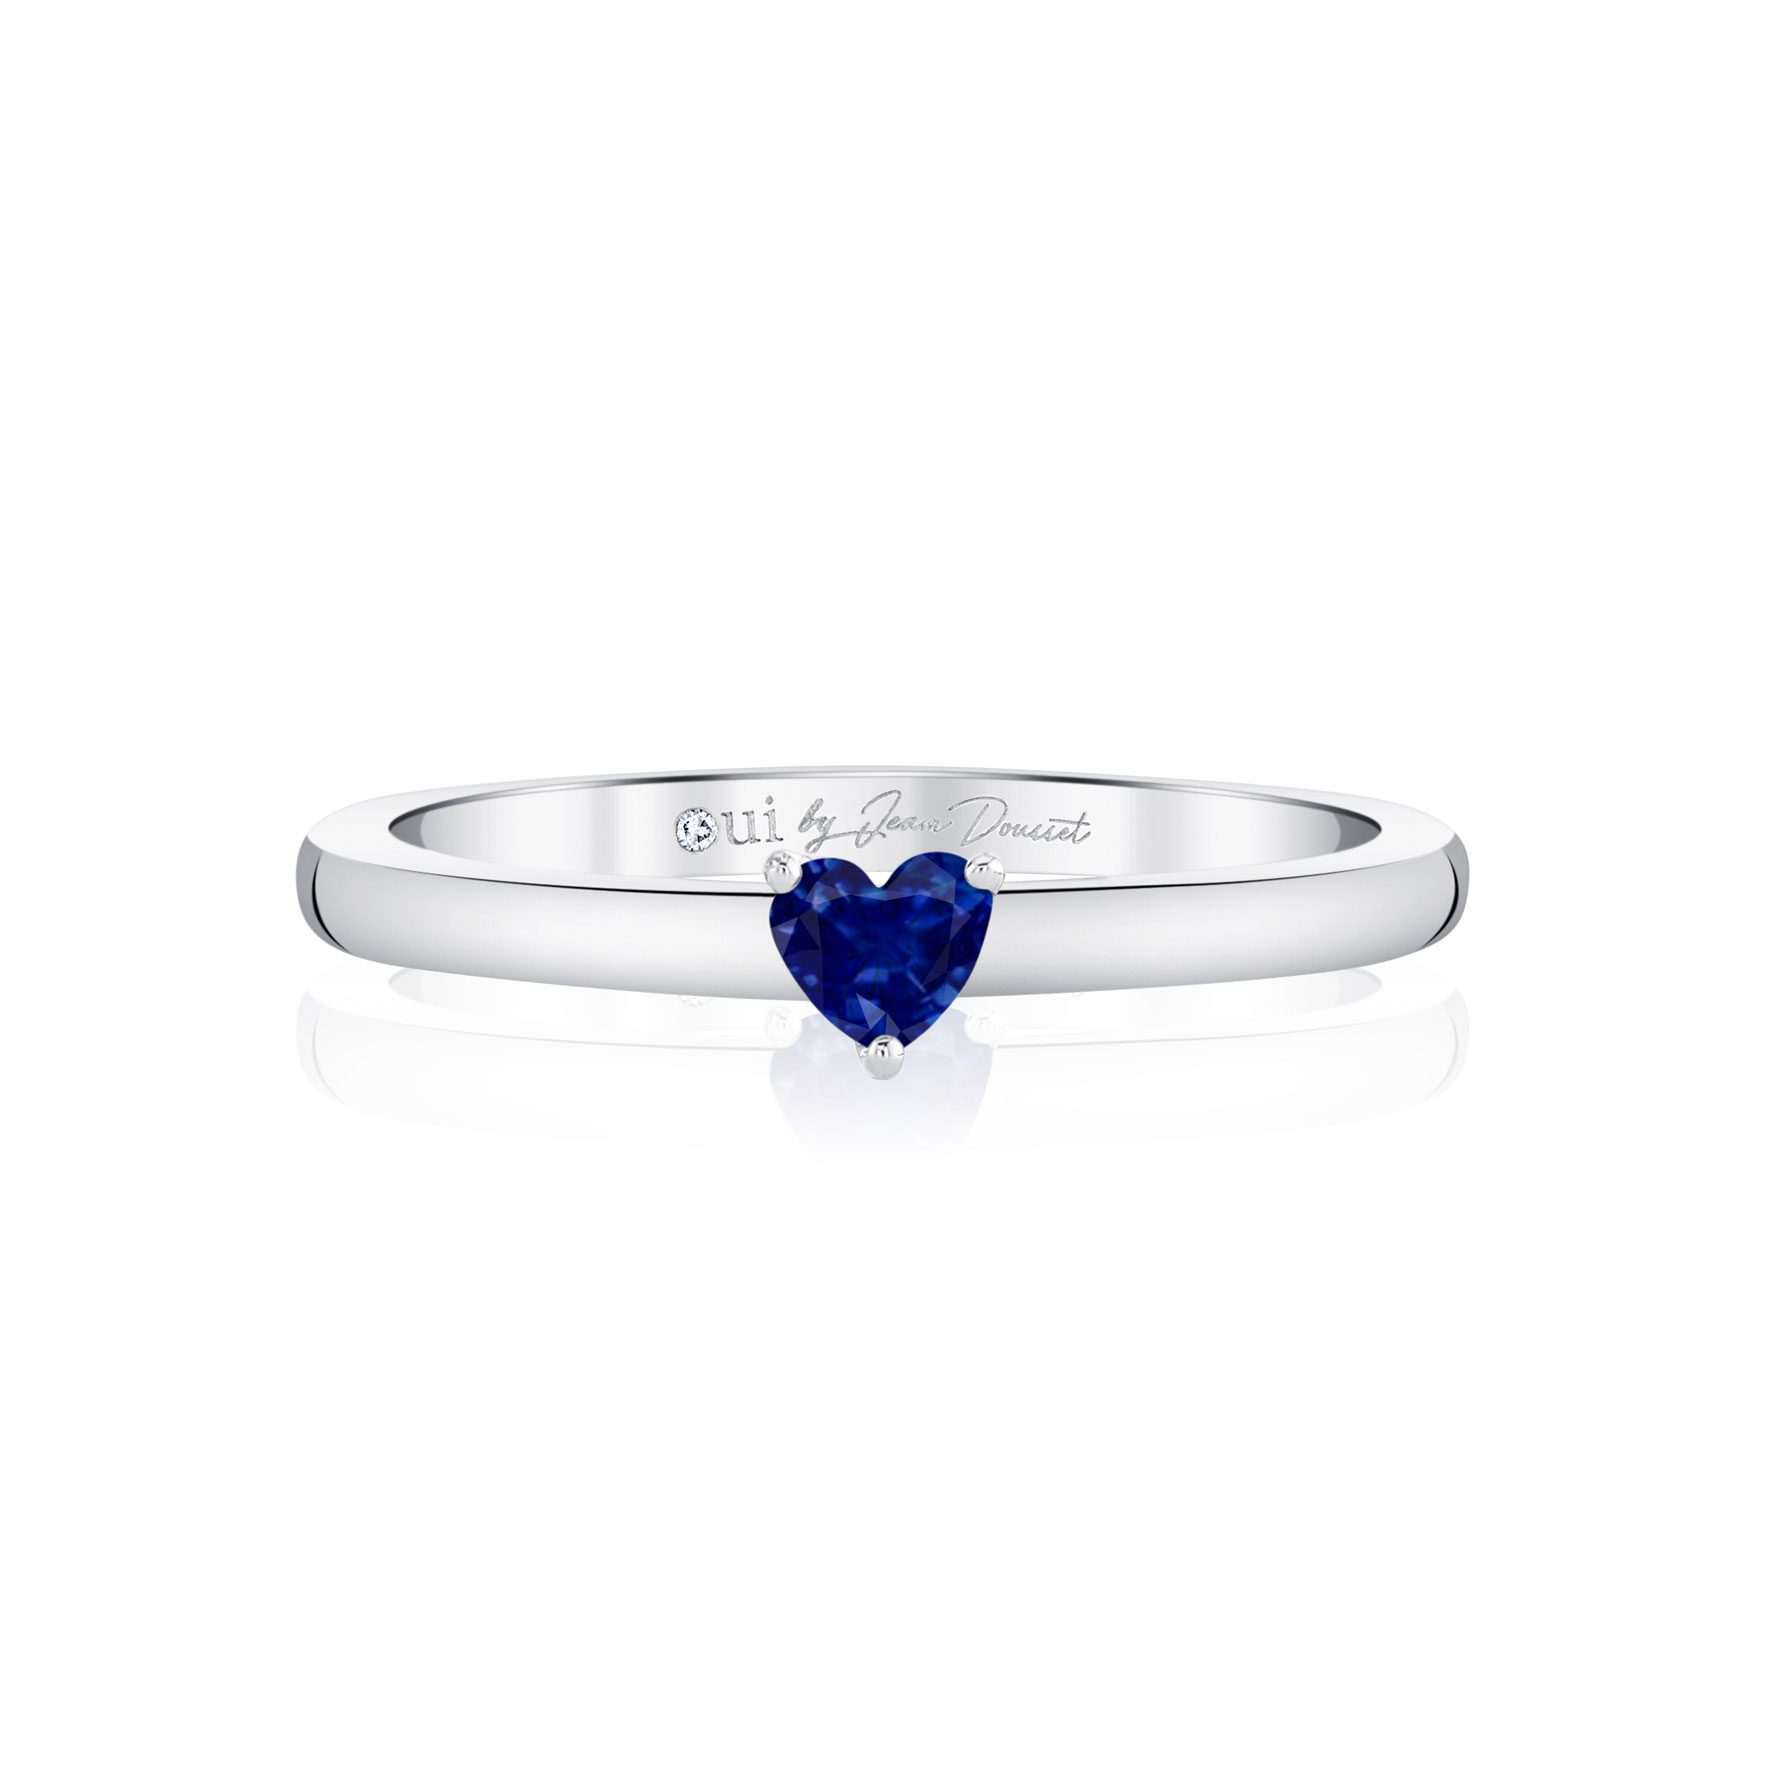 La Petite Heart Blue Sapphire Ring in 18k White Gold Front View by Oui by Jean Dousset